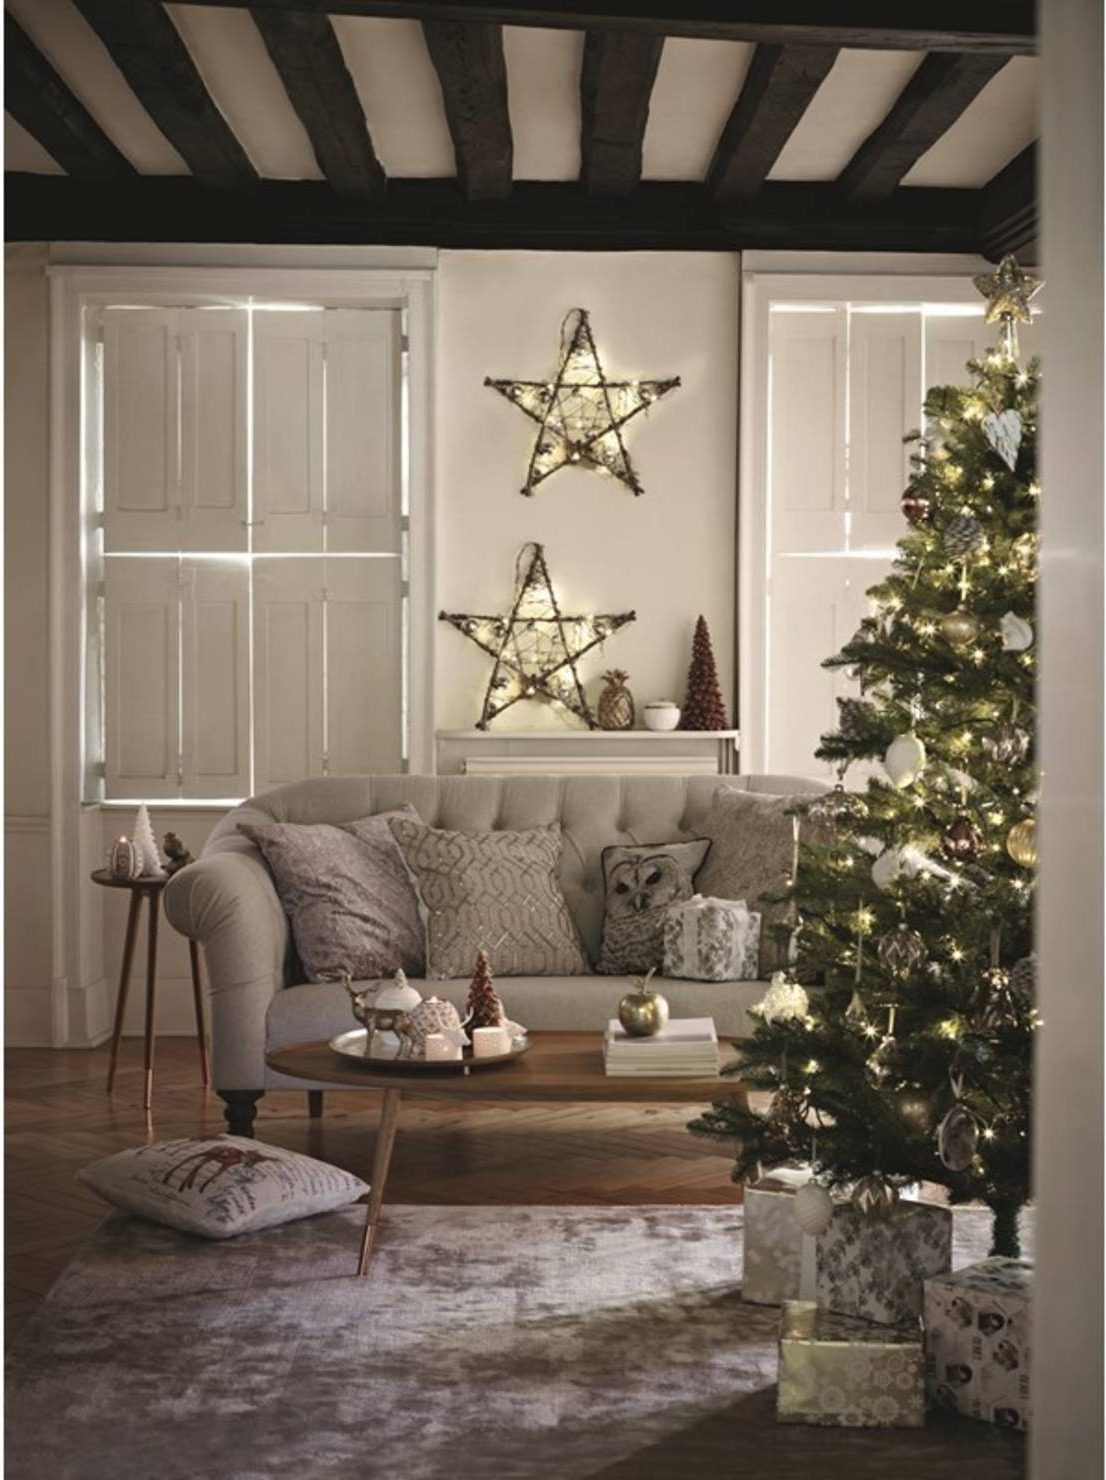 Inspiring Christmas Decor Ideas to Copy  Christmas Decor Ideas Inspiring Christmas Decor Ideas to Copy 10 Inspiring Christmas Decor Ideas to Copy2 e1481892416615